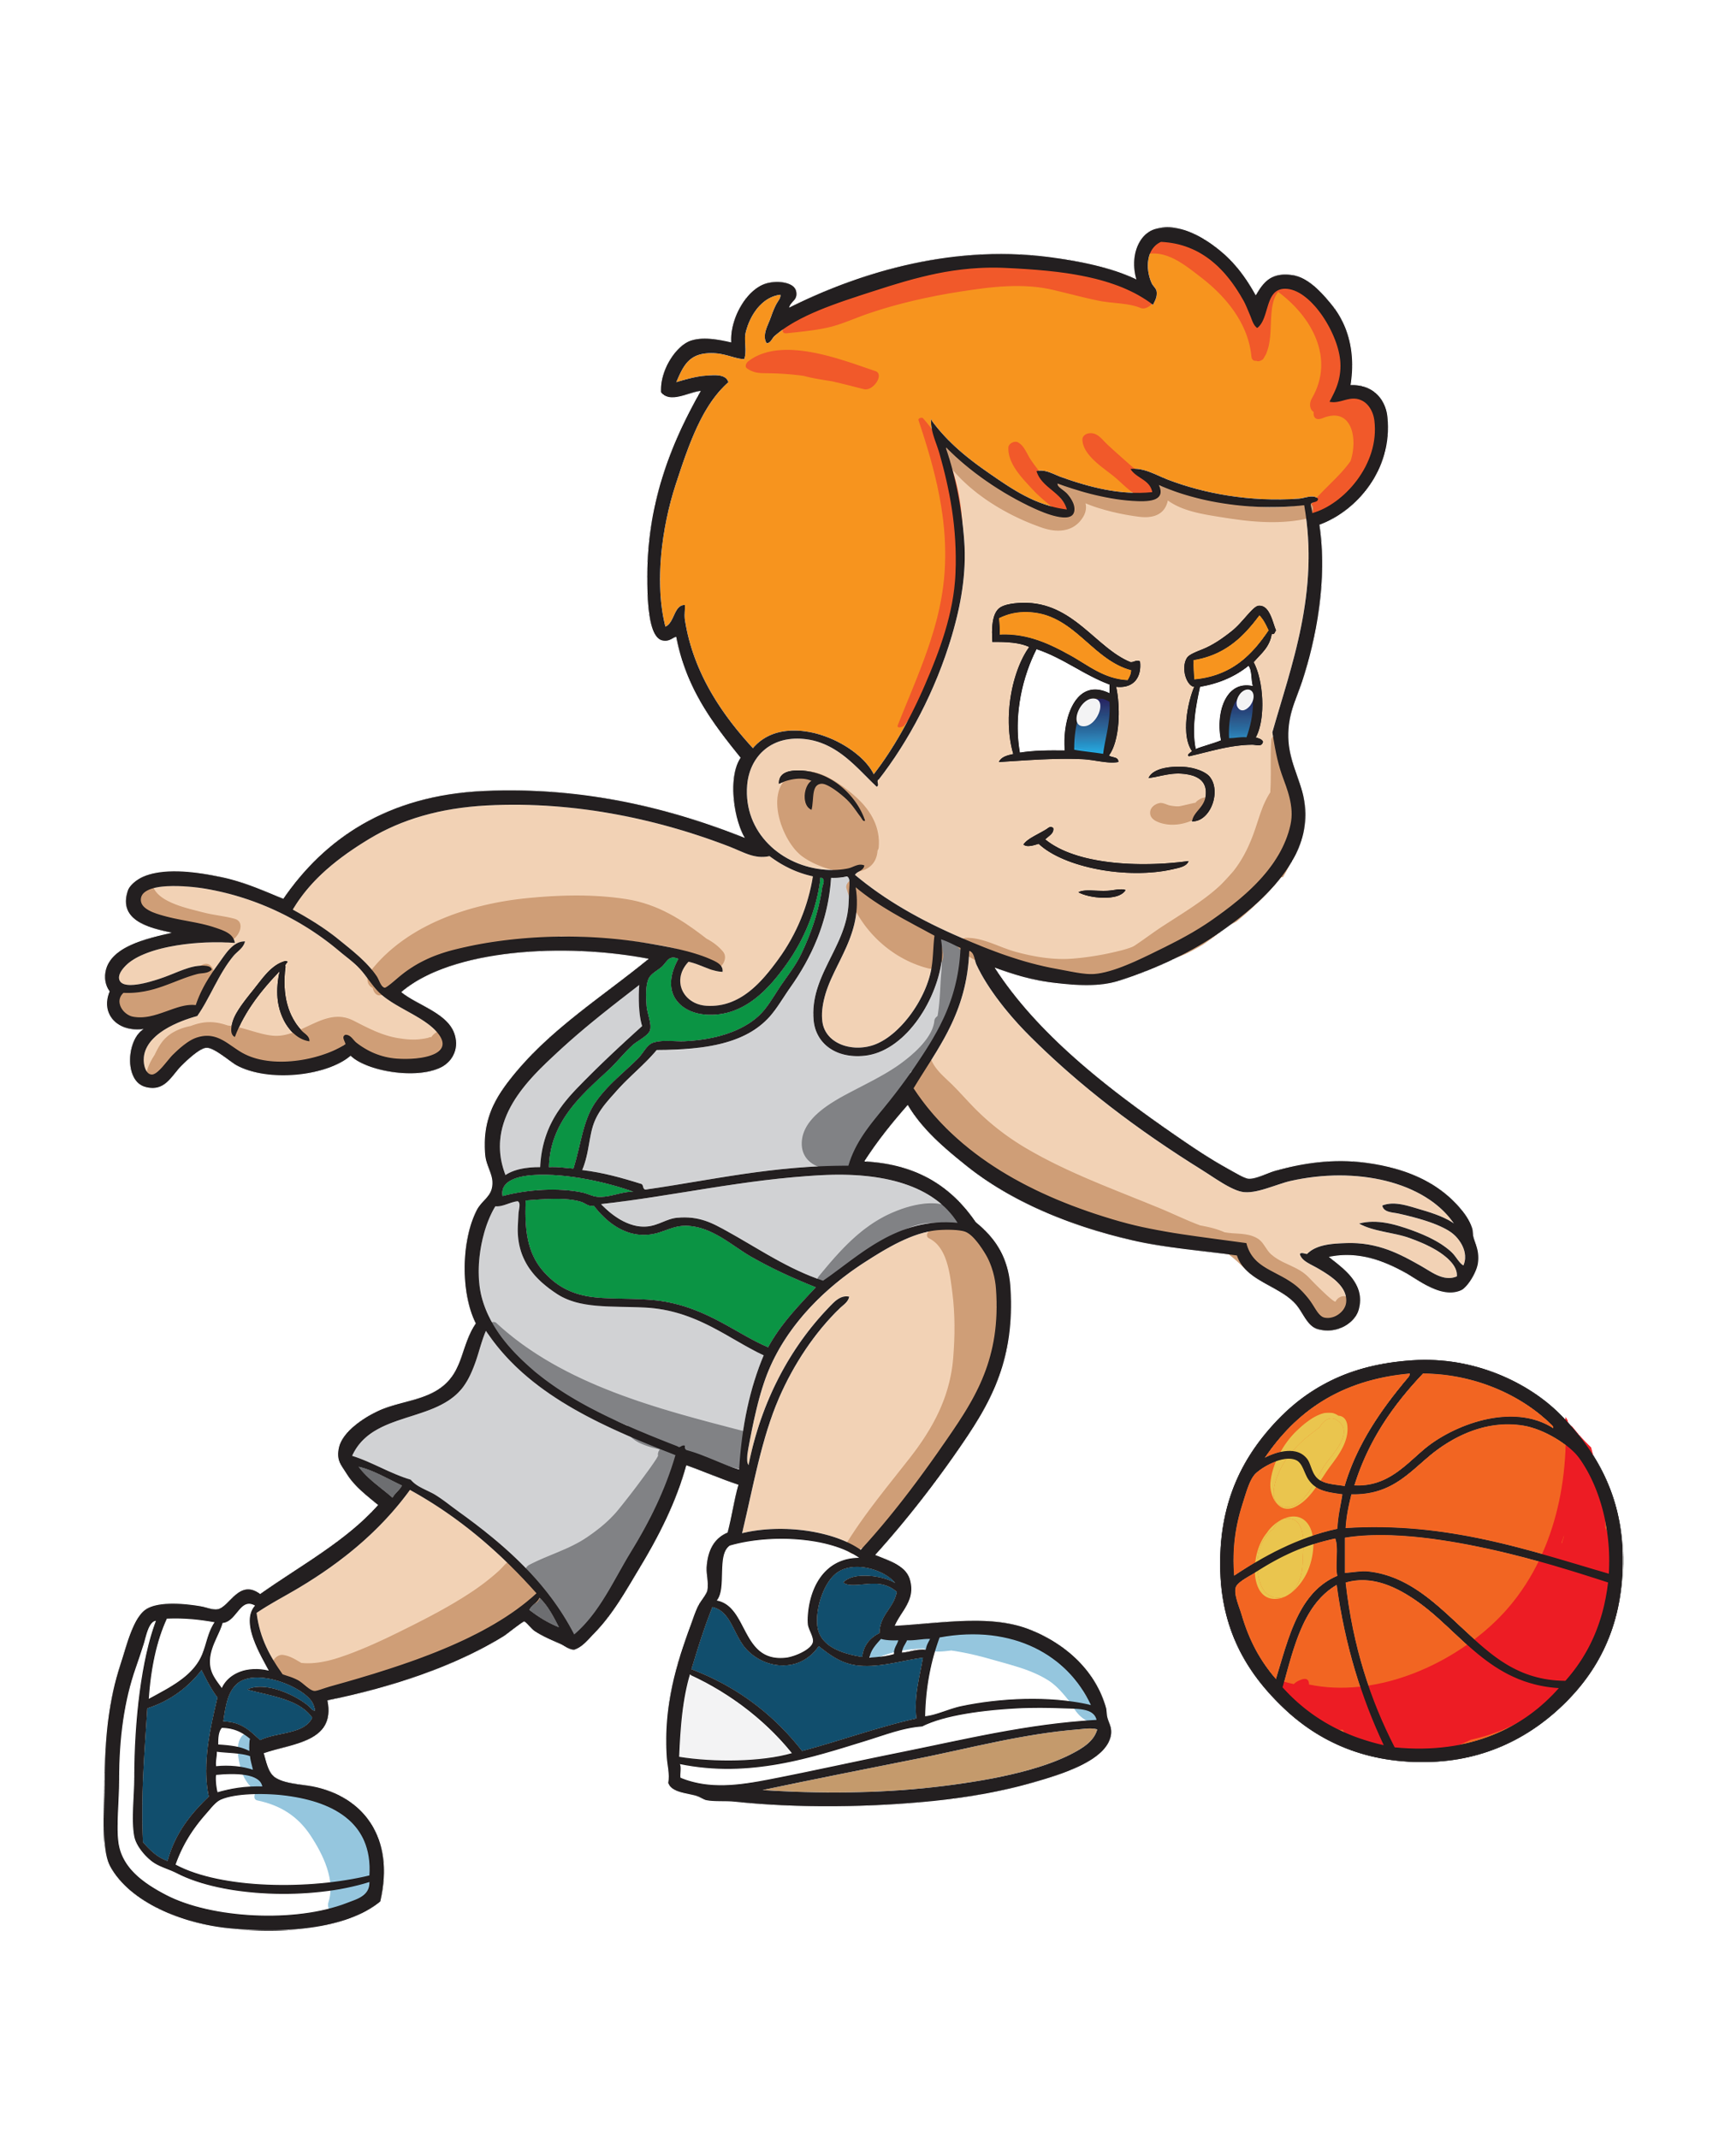 kids-playing-sports-collection-008